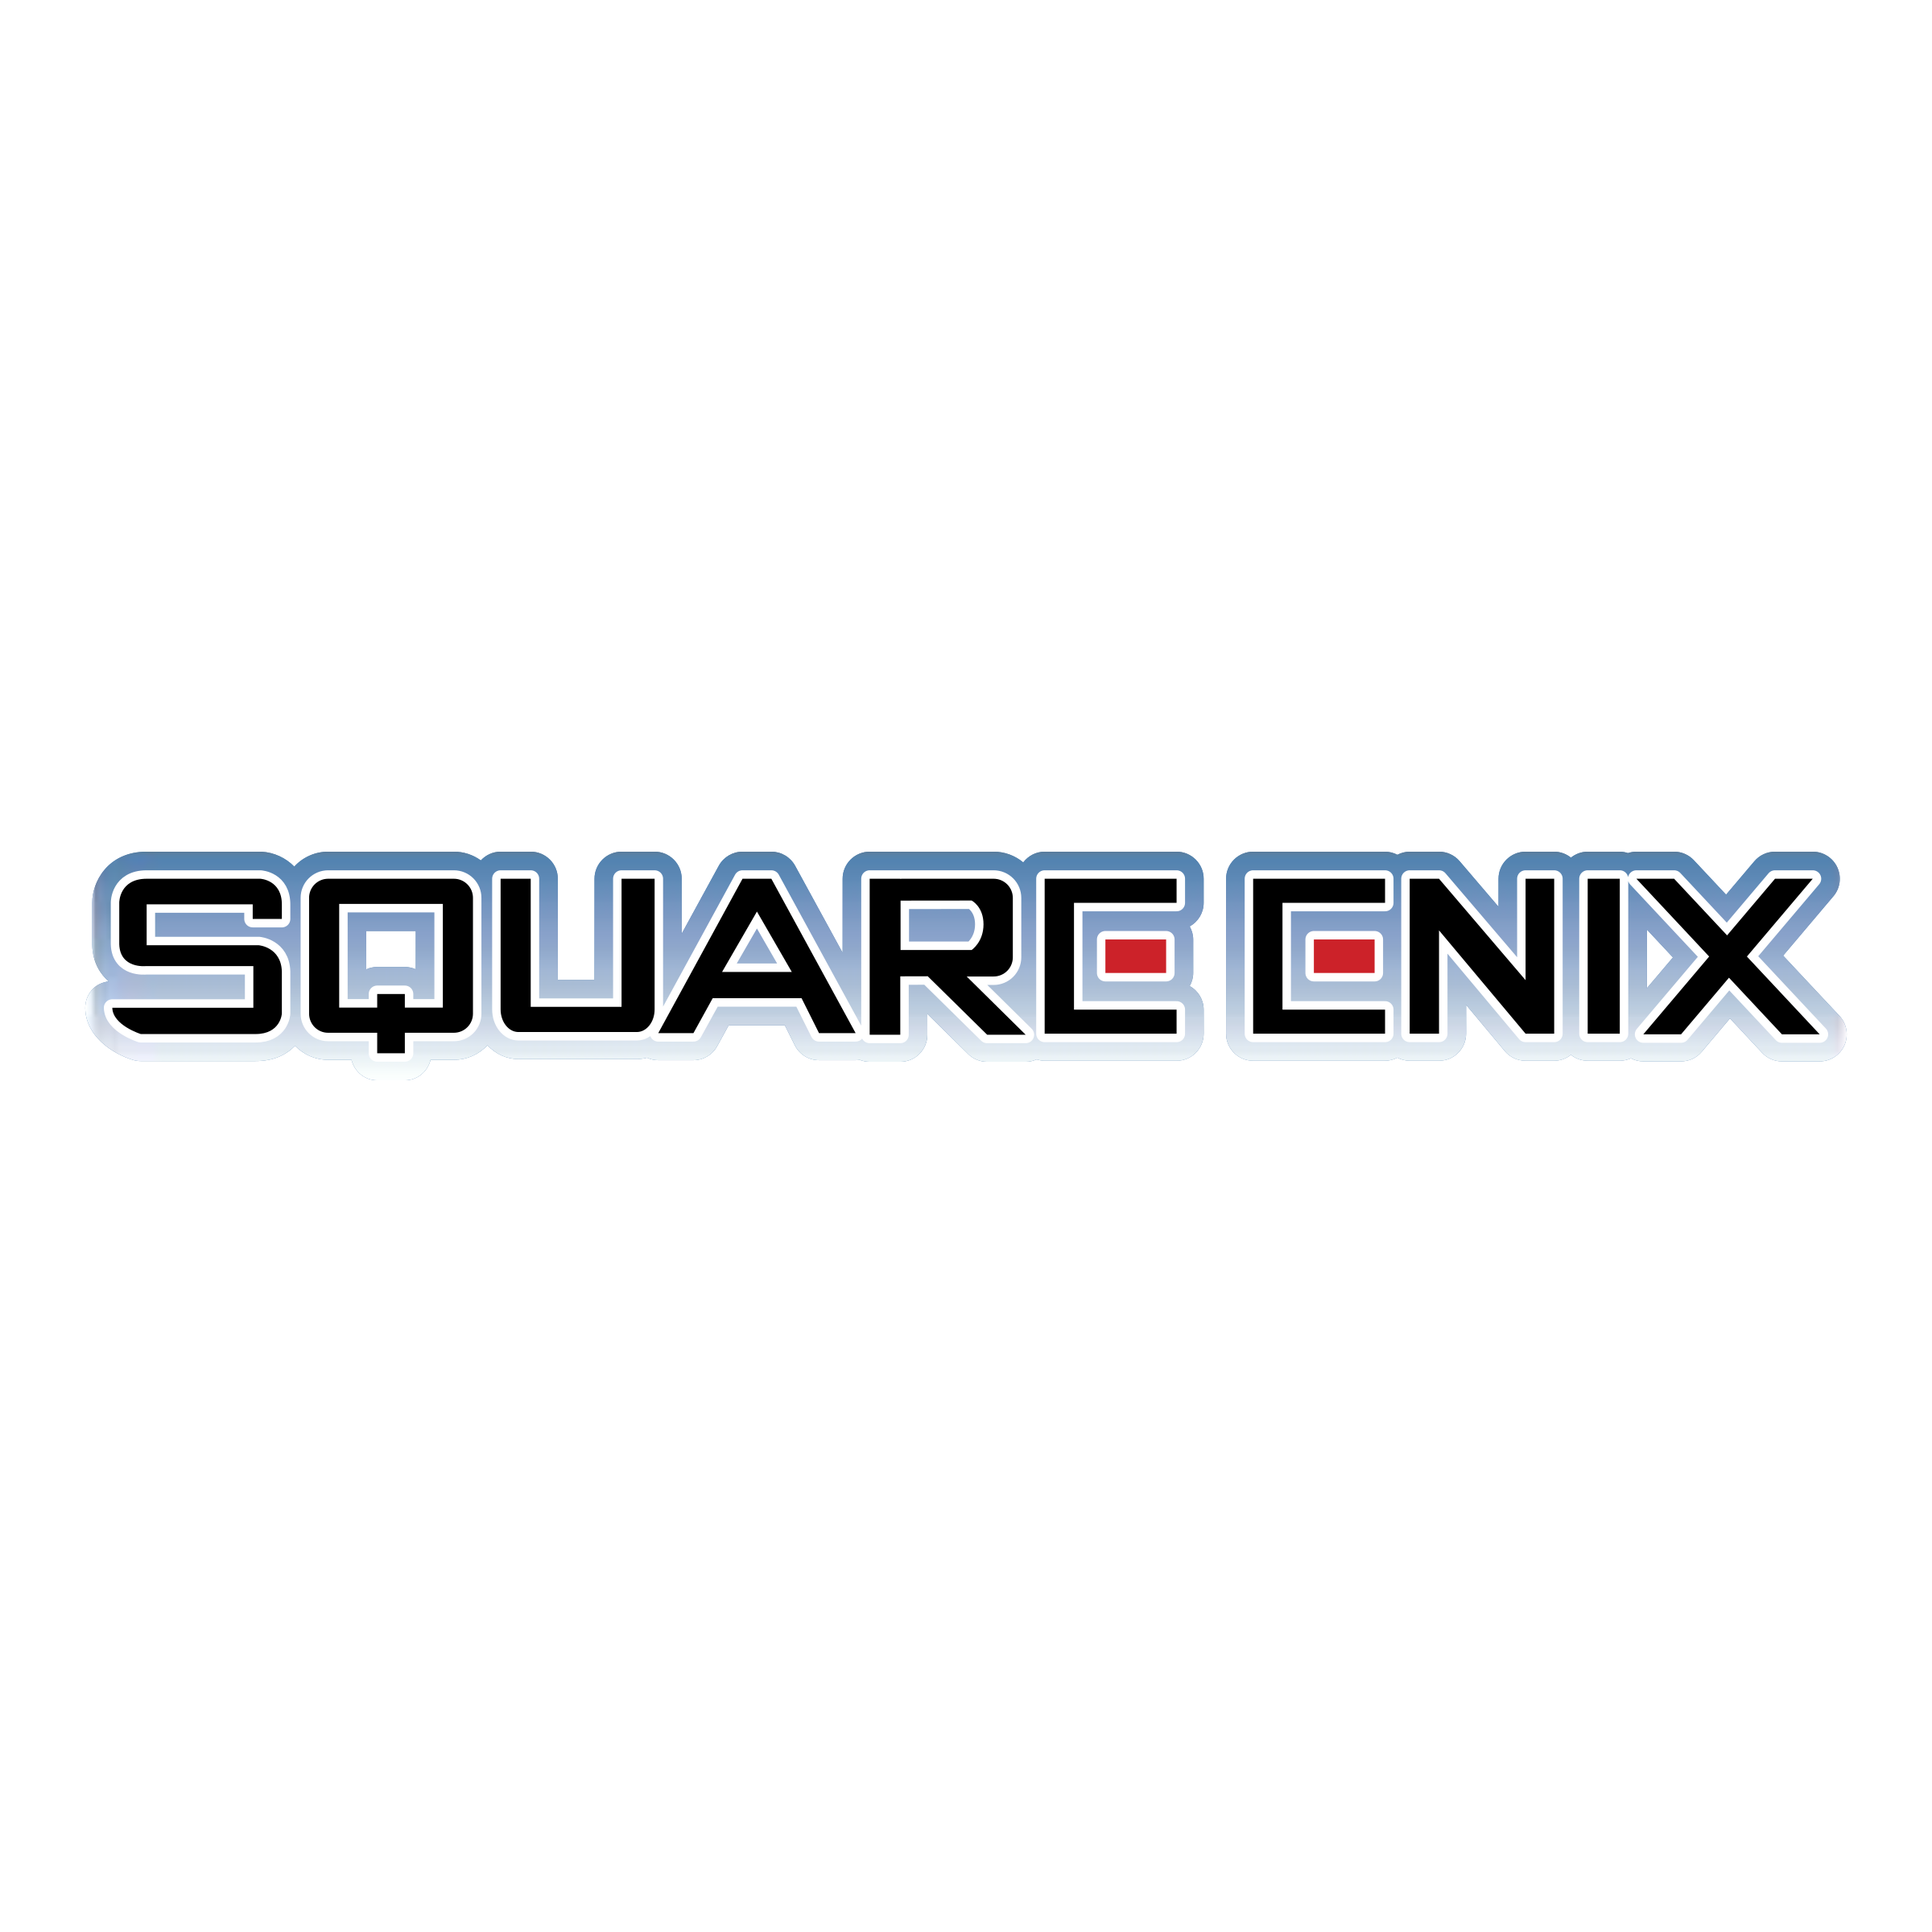 Square Enix Logo PNG Transparent & SVG Vector - Freebie Supply